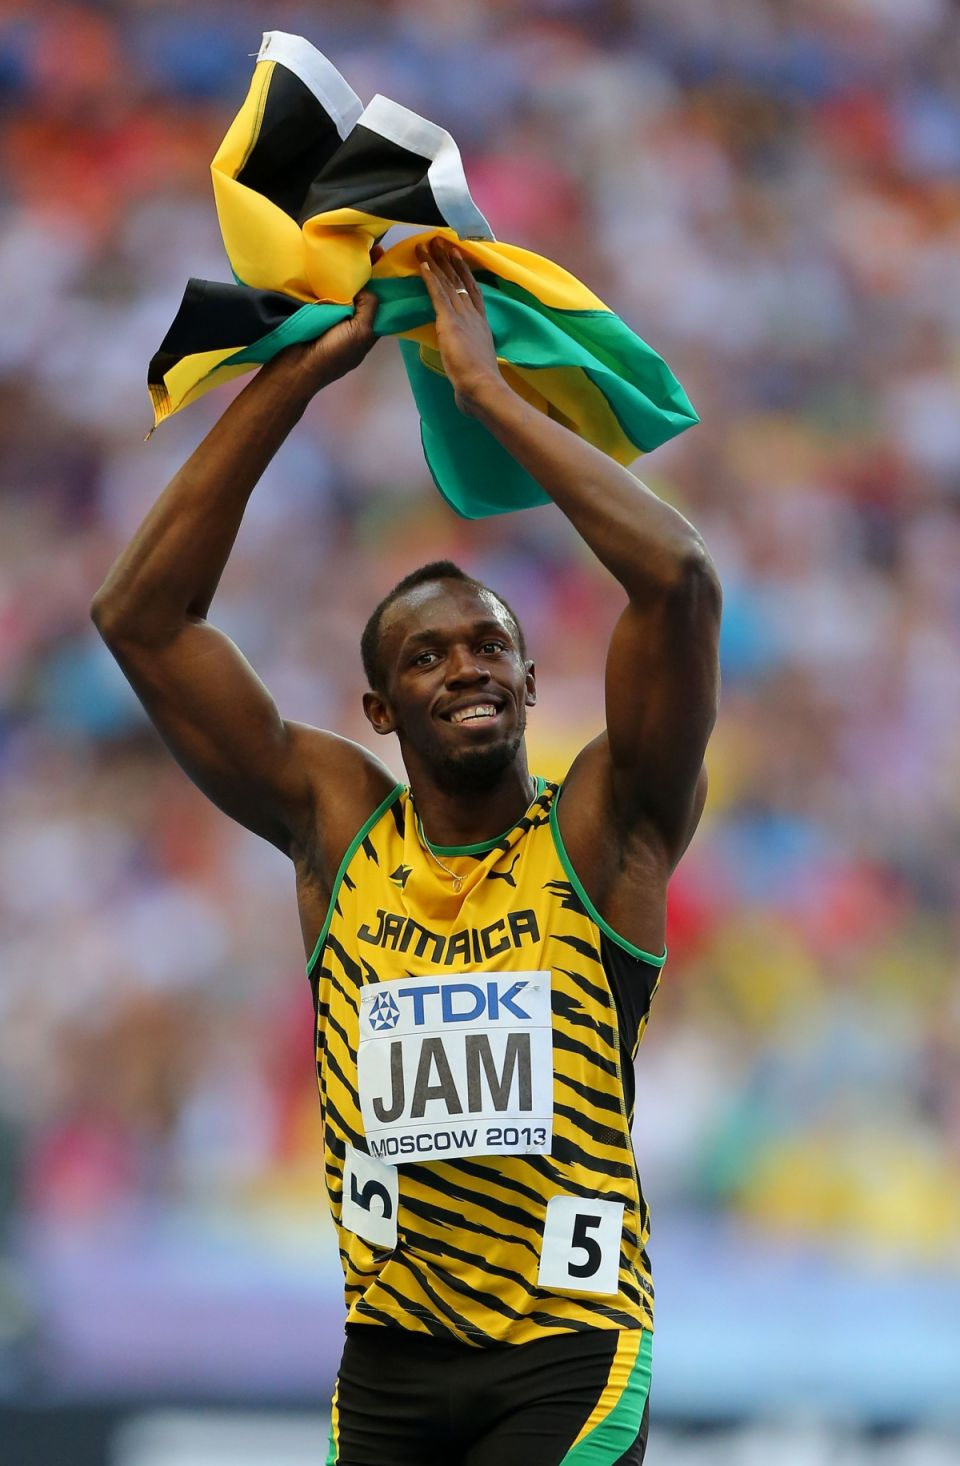 Usain Bolt news 2015: Edges out Justin Gatlin to win 100m ...